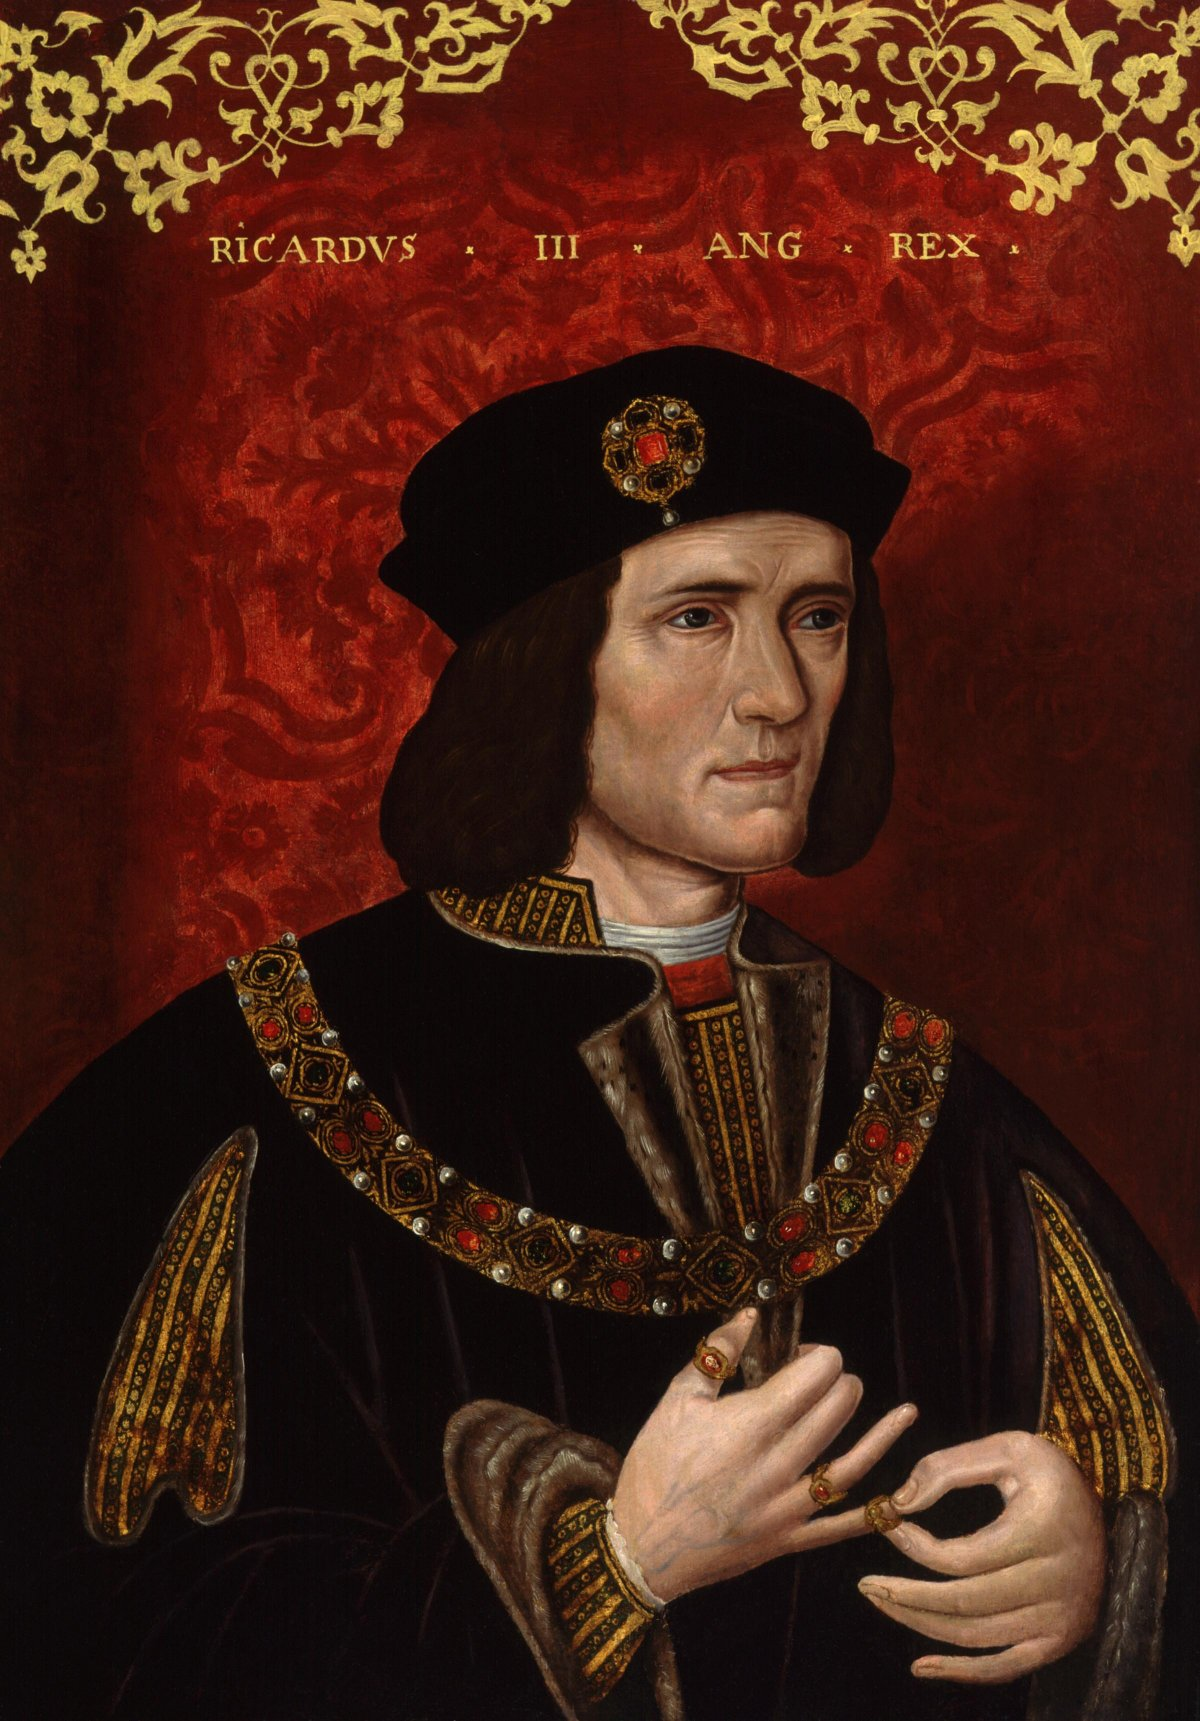 Free online course provides insights into Richard III reinterment